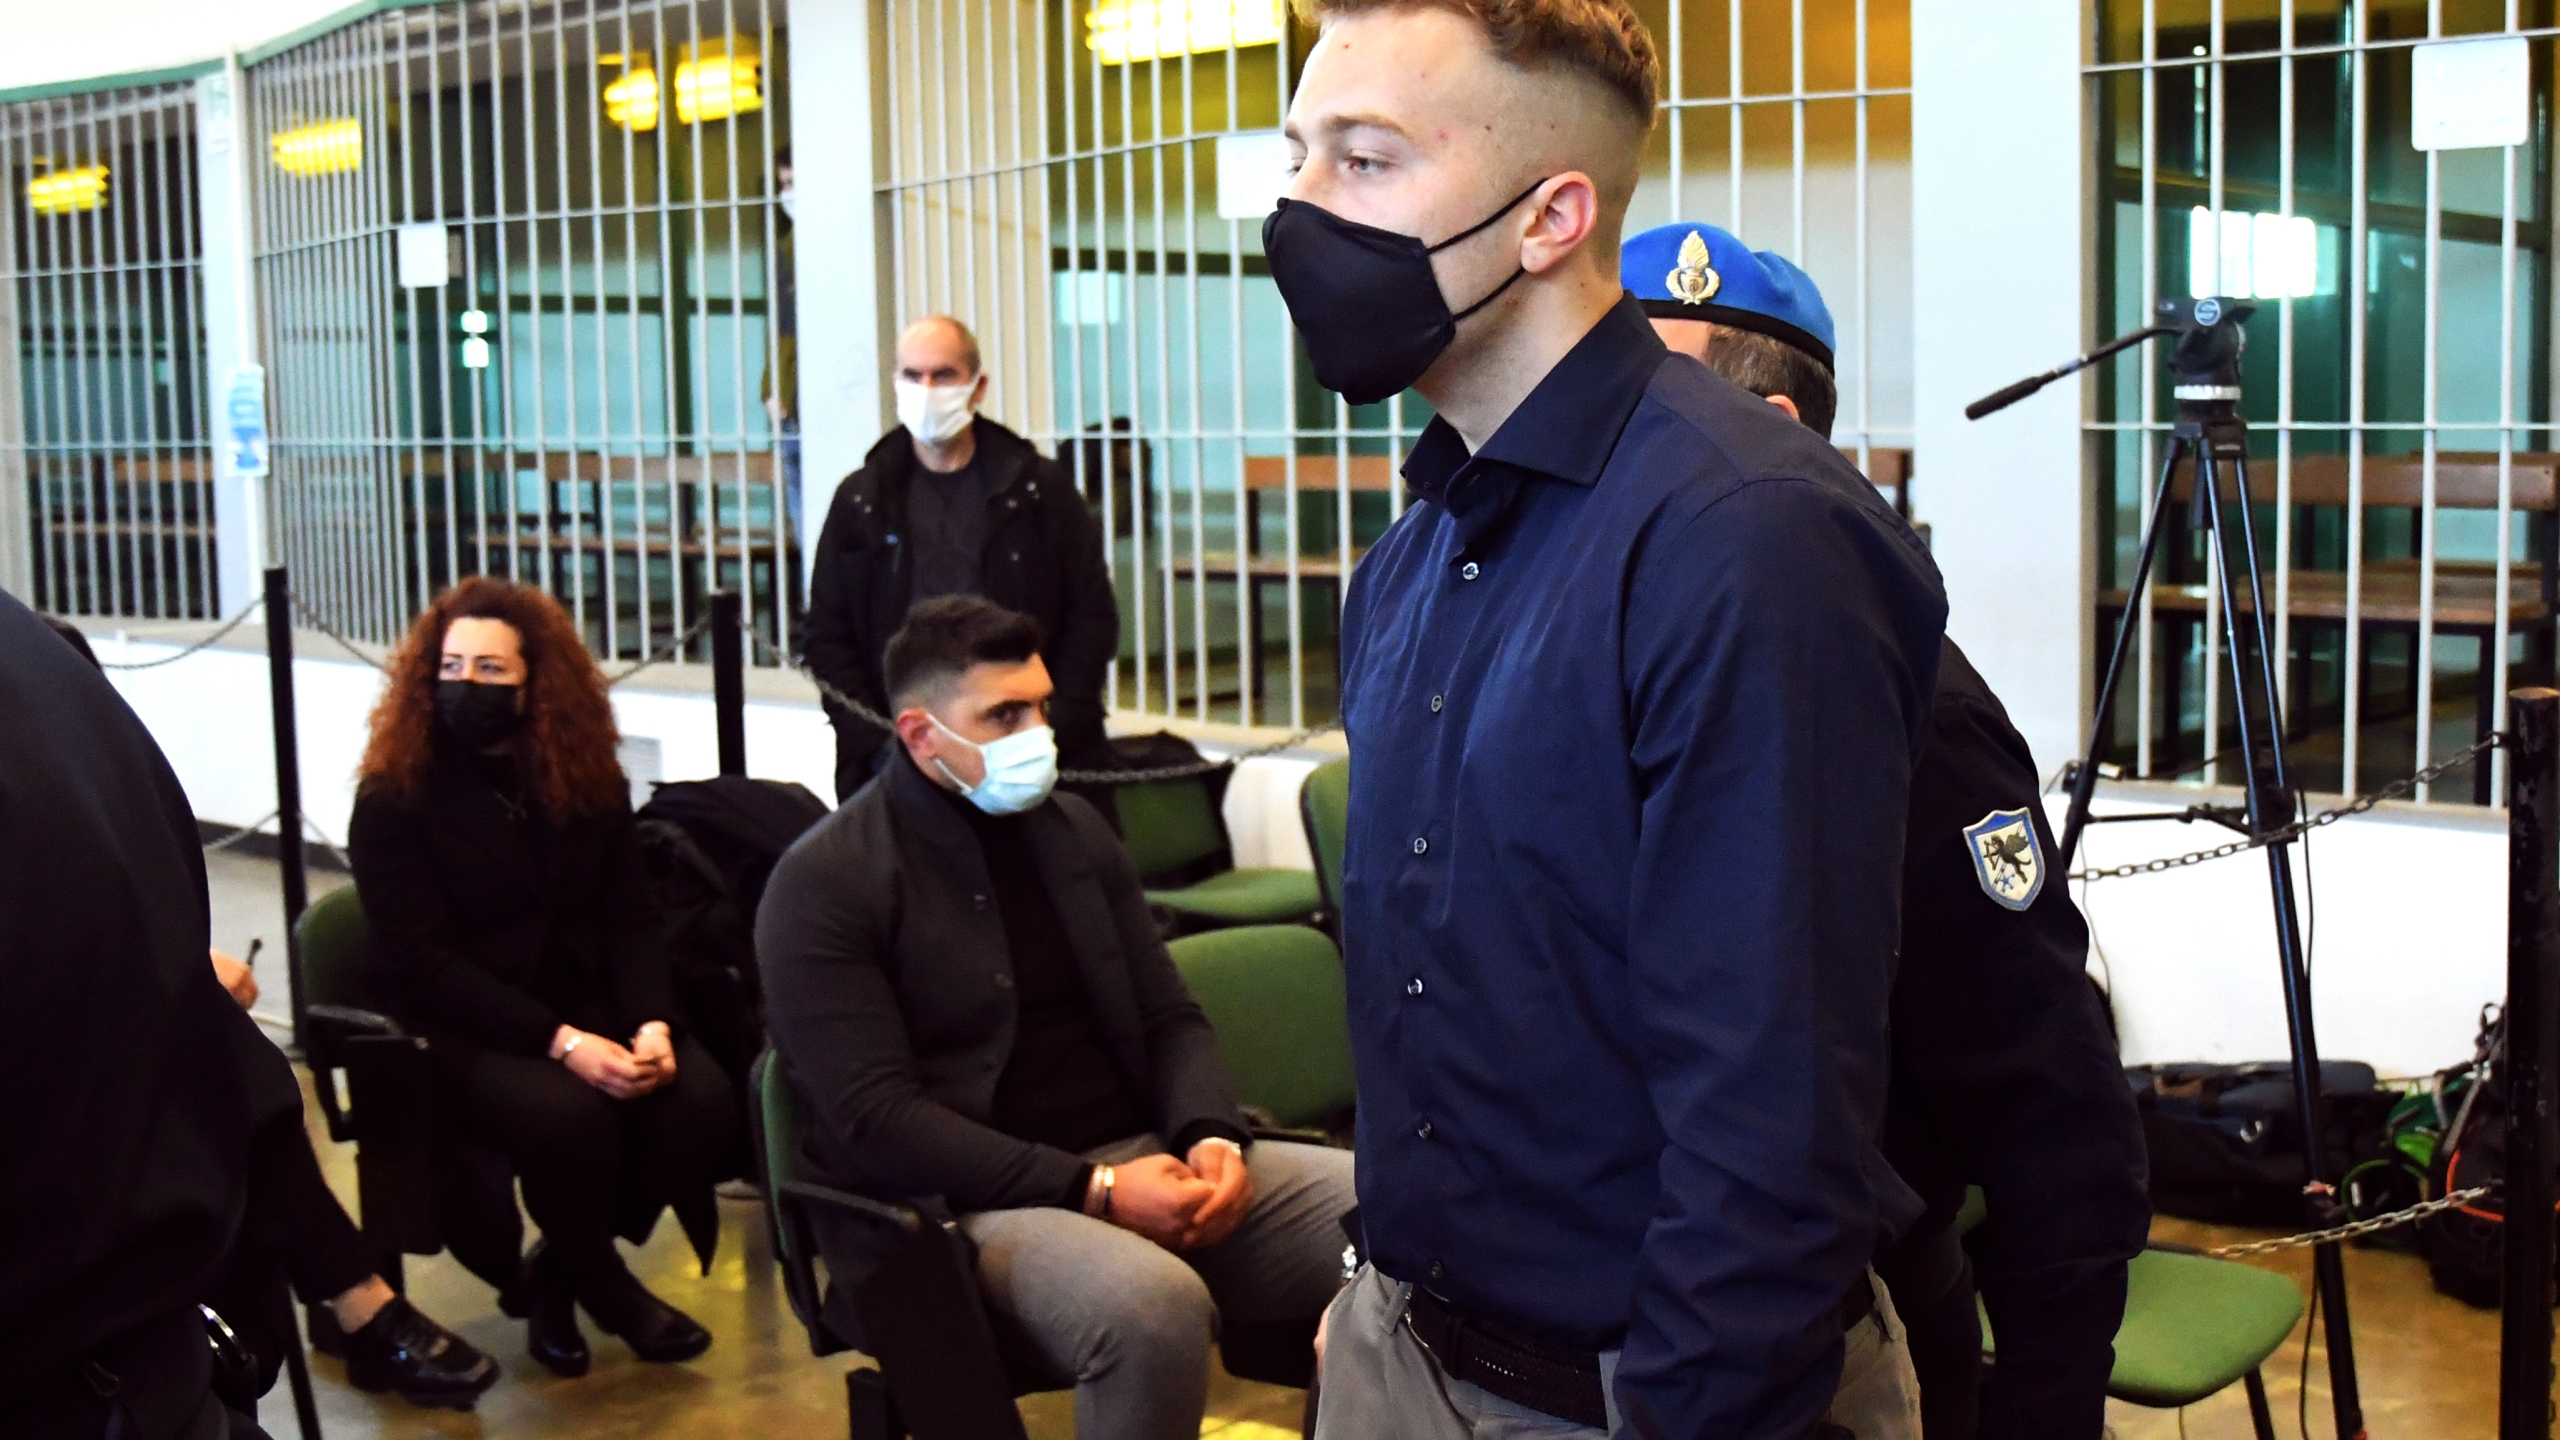 Finnegan Lee Elder, from the United States, walks past to Rosa Maria Esilio, widow of slain Carabinieri military police officer Mario Cerciello Rega, background left, and Paolo Cerciello Rega, brother of Mario, center, on March 1, 2021, prior to a hearing in Rome in the trial where he and Gabriel Natale-Hjorth are accused of slaying a plainclothes Carabinieri officer while on vacation in Italy in July 2019. (Alberto Pizzoli / Associated Press)